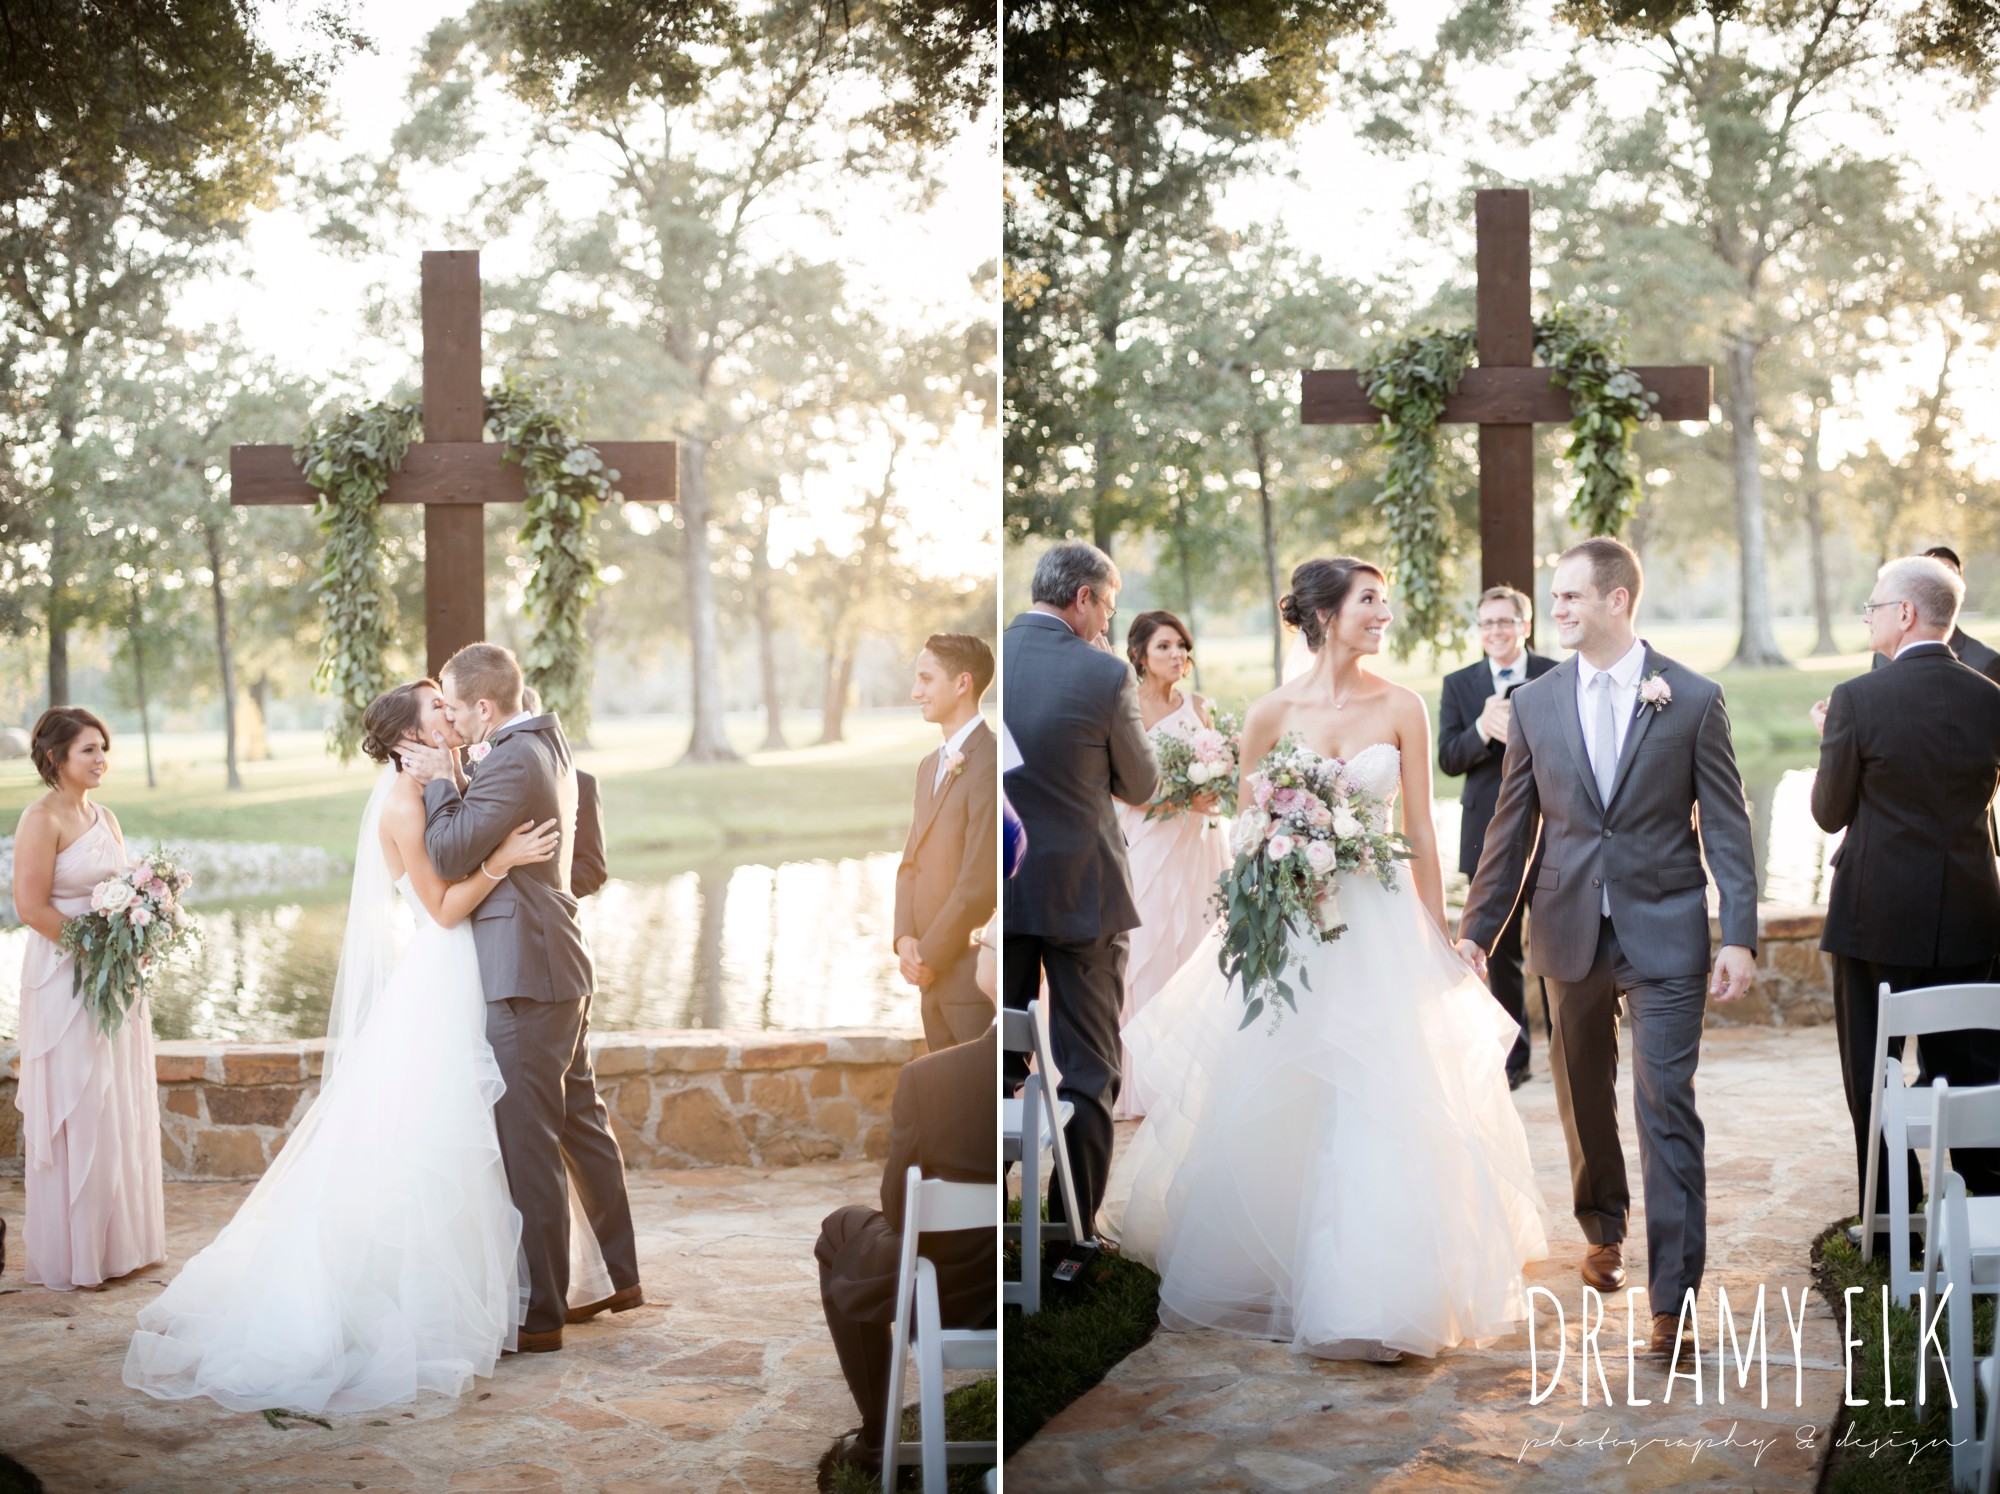 sunset wedding ceremony, bride and groom kissing, walking down the aisle, outdoor fall october wedding photo, blush and gray wedding, balmorhea weddings and events, dreamy elk photography and design, austin texas wedding photographer